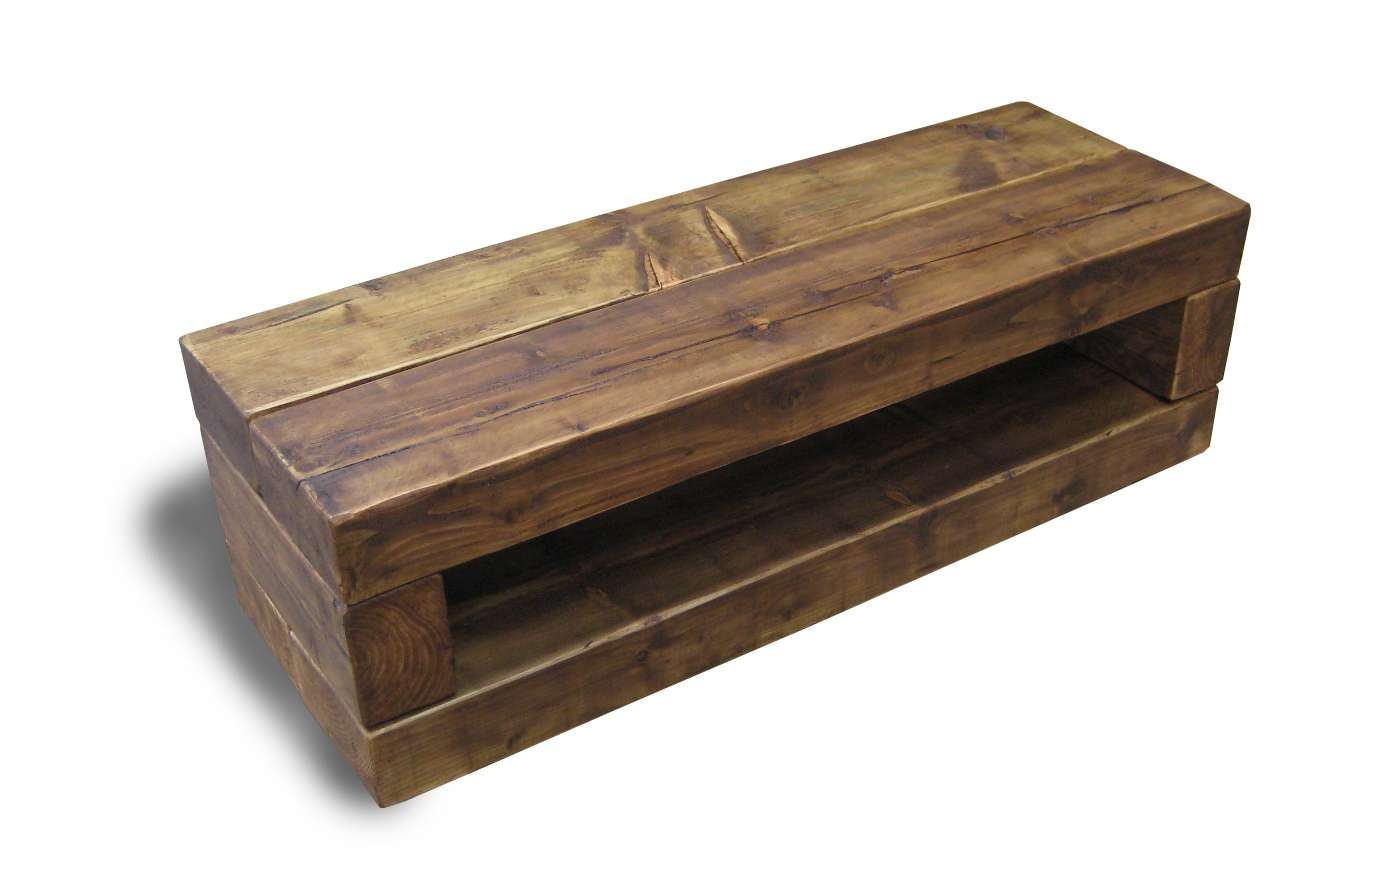 Chunky Stretch Tv Stand – The Cool Wood Company With Regard To Dark Wood Tv Stands (View 2 of 15)